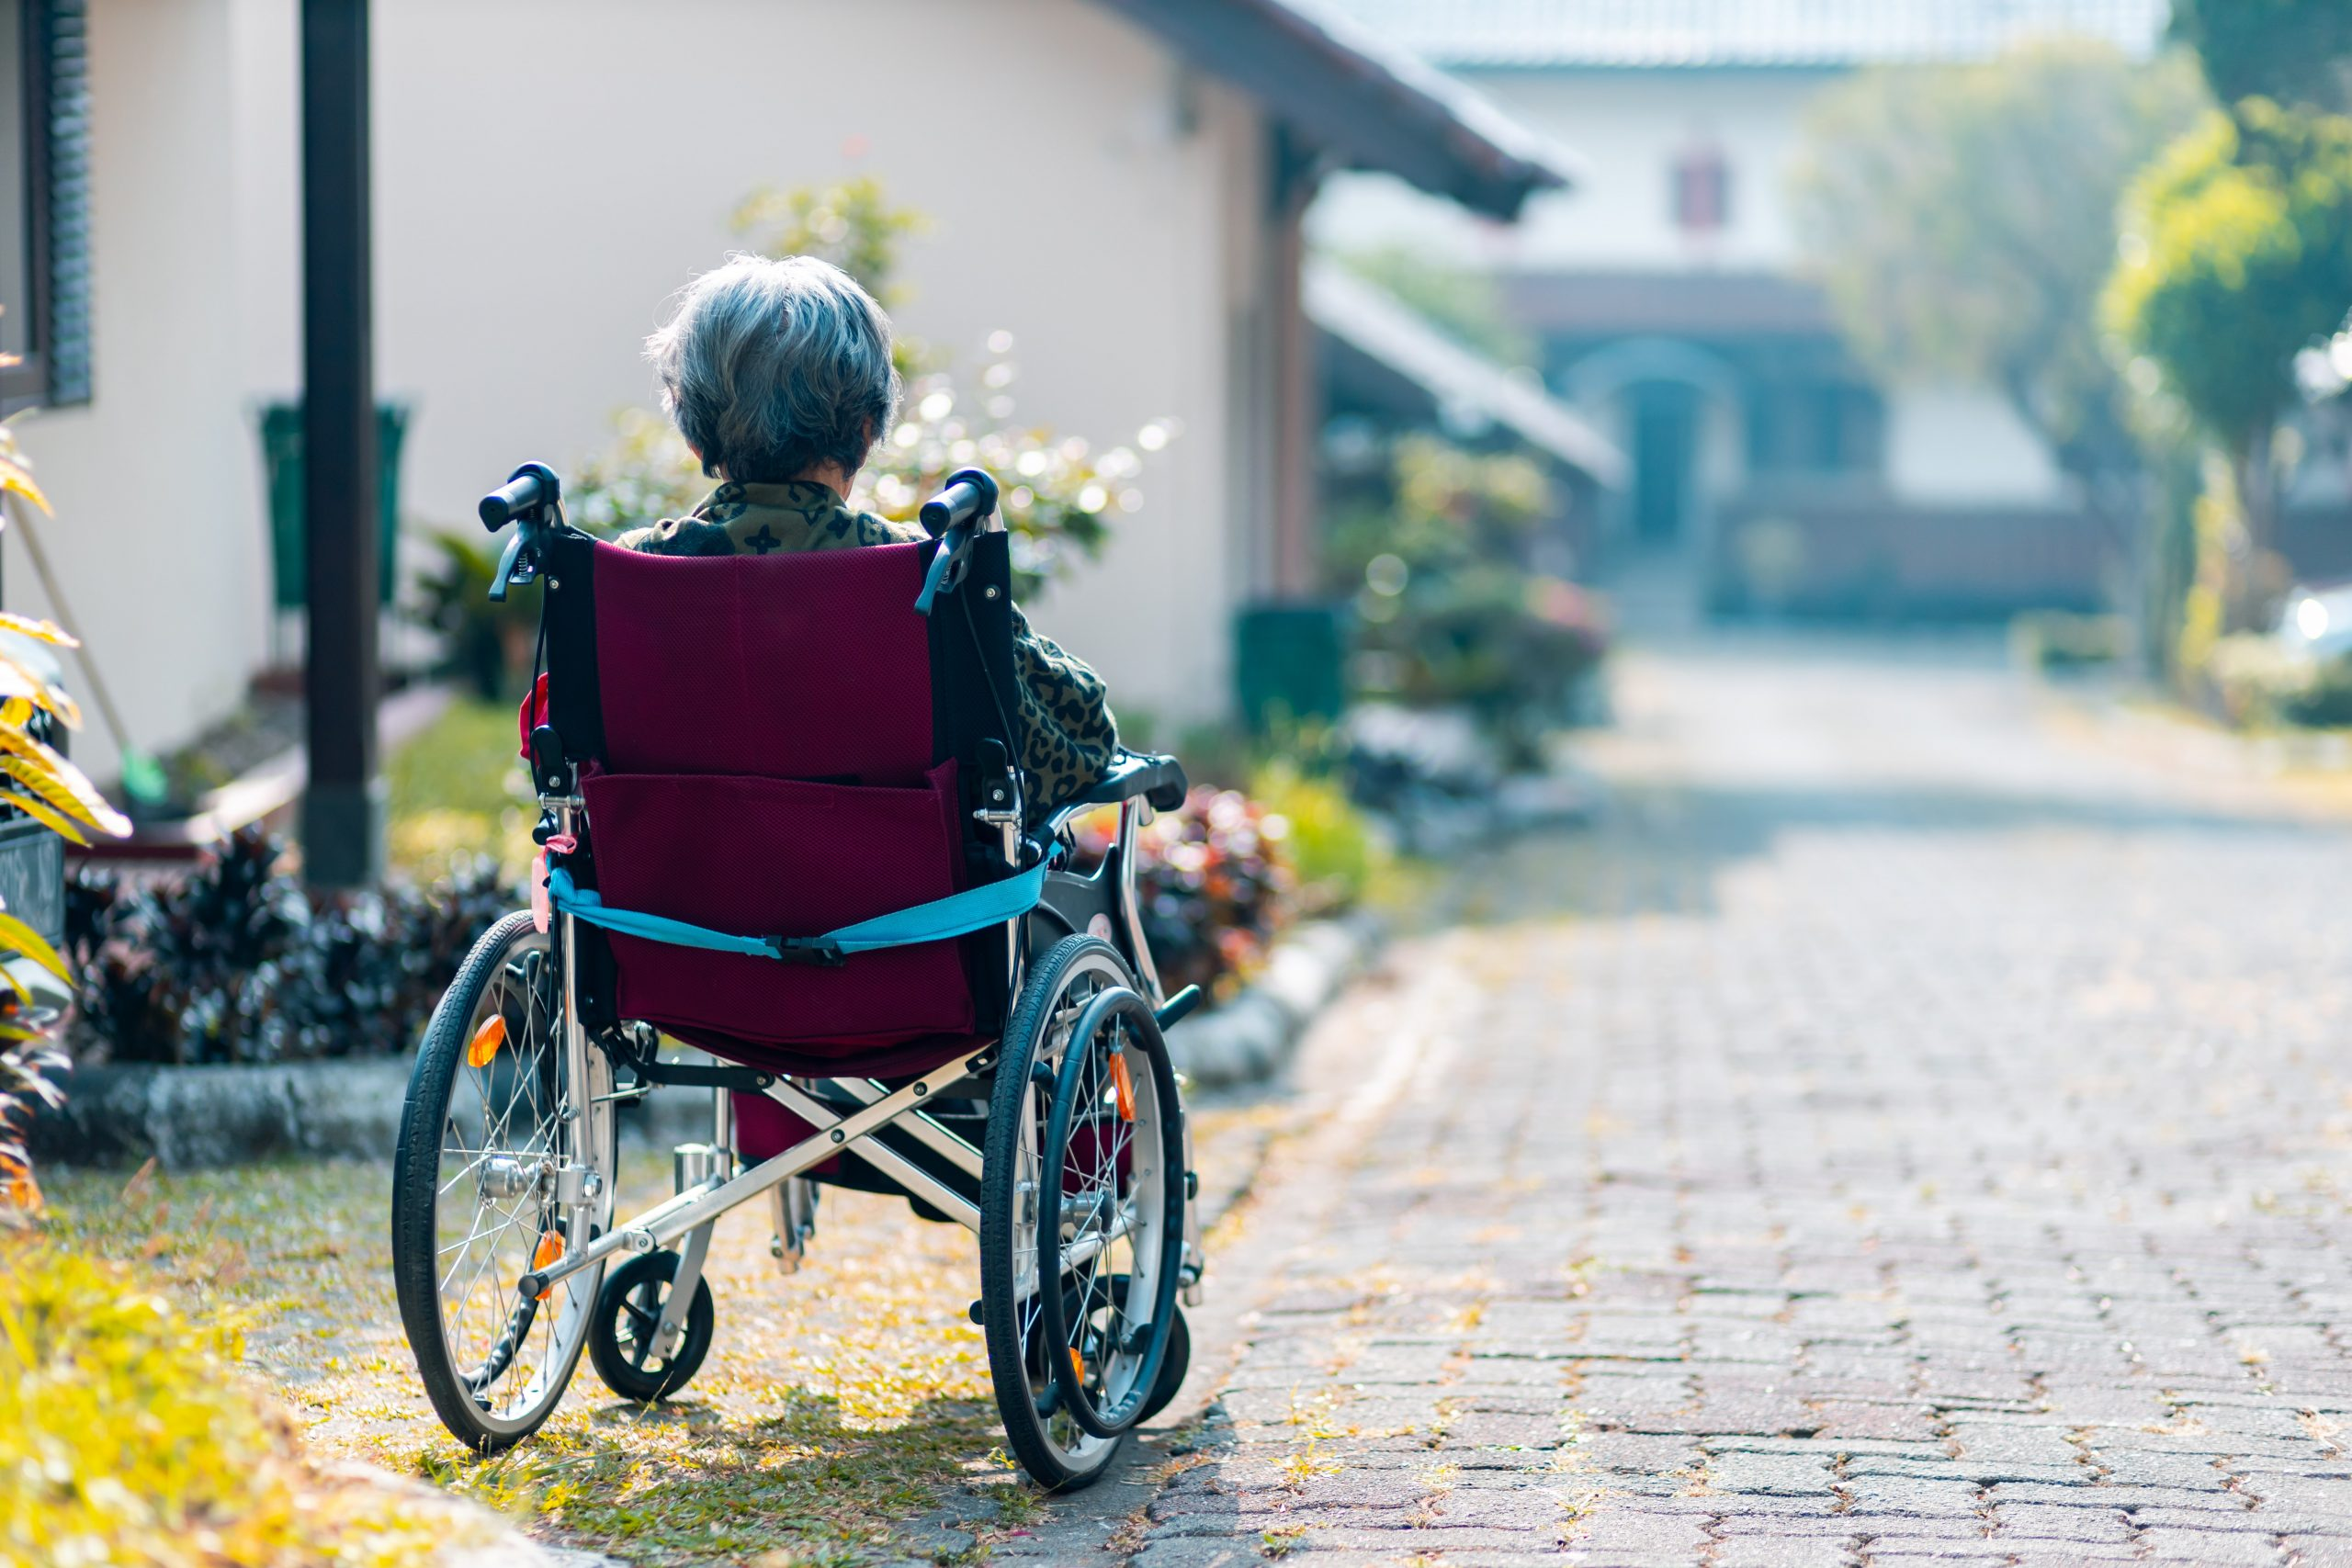 A person using a wheelchair faces away from the camera. Their wheelchair has a red seat and they are facing outward toward a road with a white house in the background.